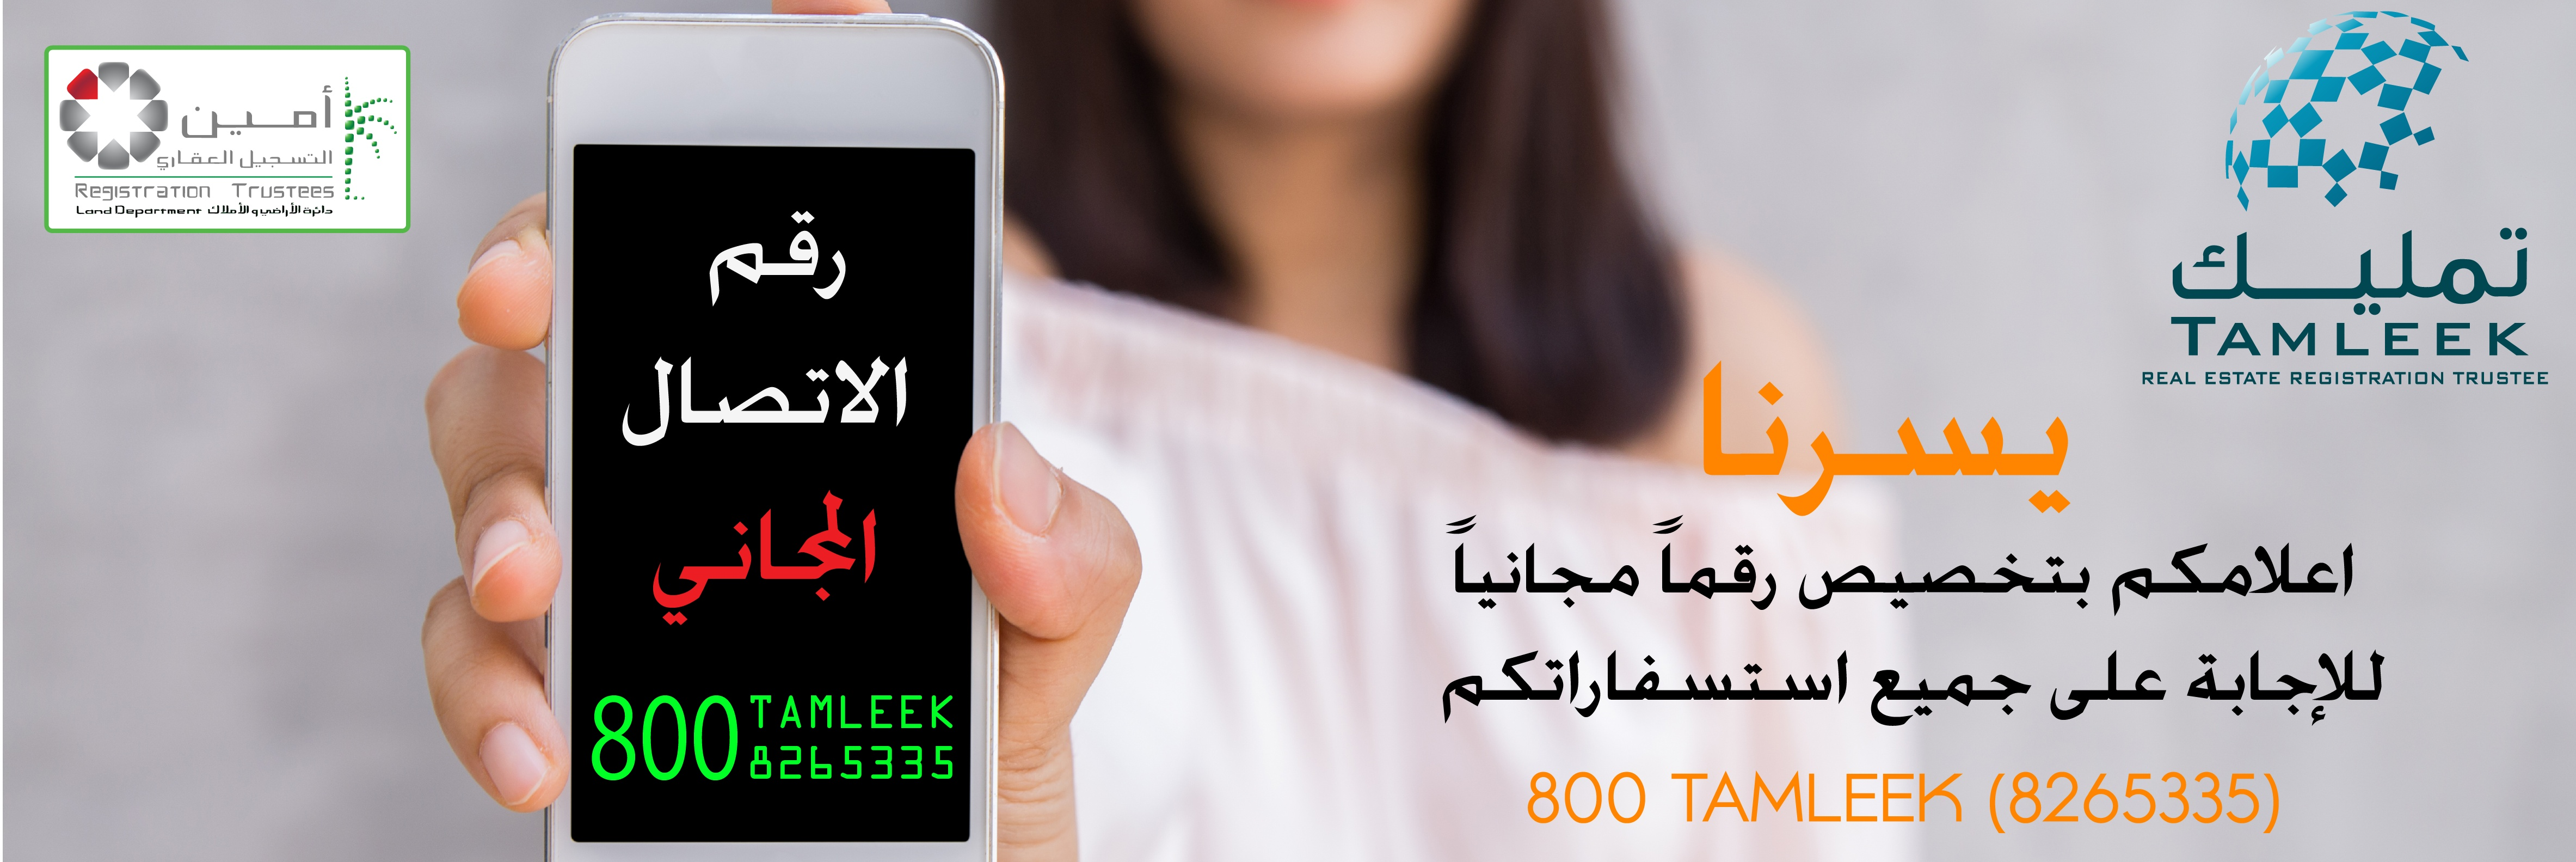 arabic-800-web-e-step-01